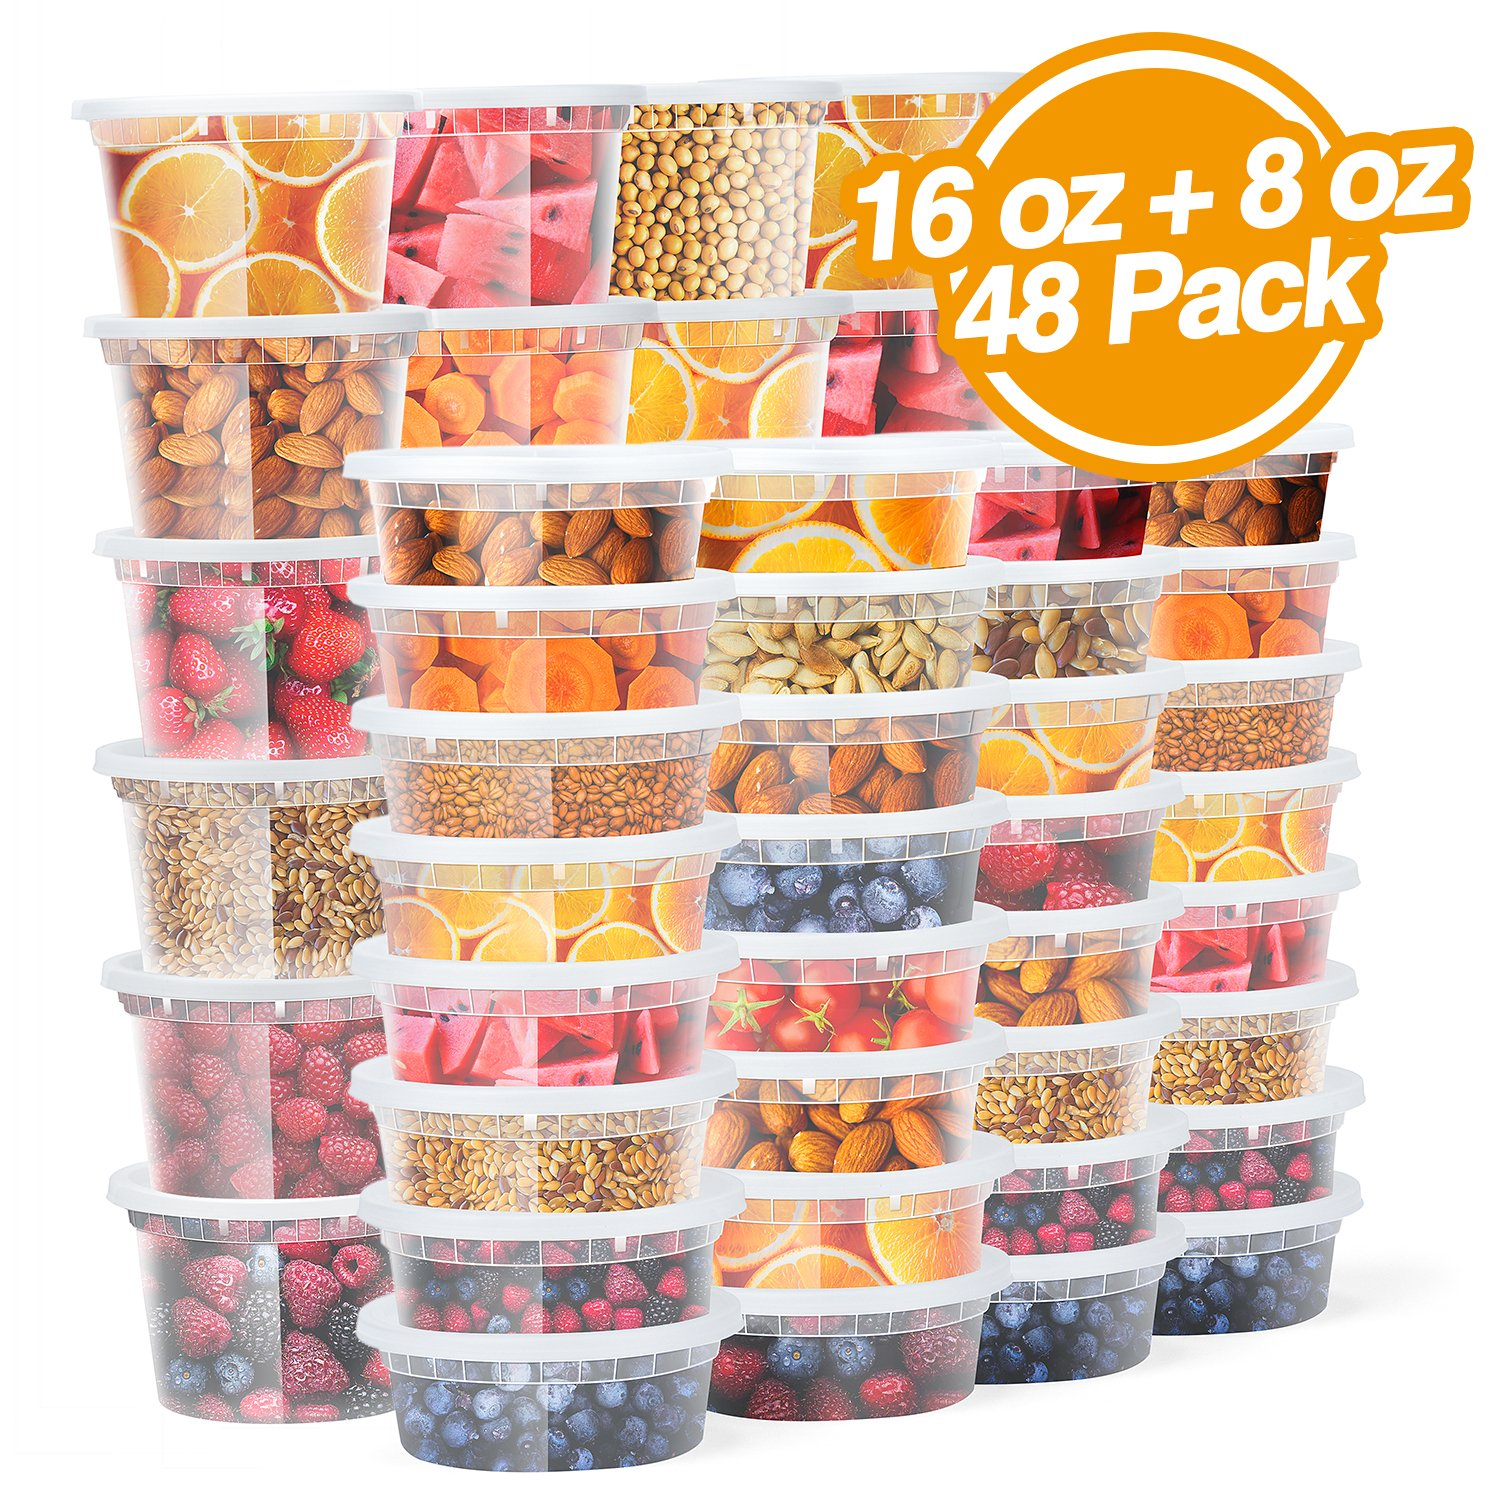 Glotoch Deli containers Food Storage Containers with Lids 8oz, 16oz Freezer Deli Cups Combo Pack, BPA-Free Leakproof Round Clear Takeout Container Meal Prep Microwavable (48 PACKS - Mixed sizes)